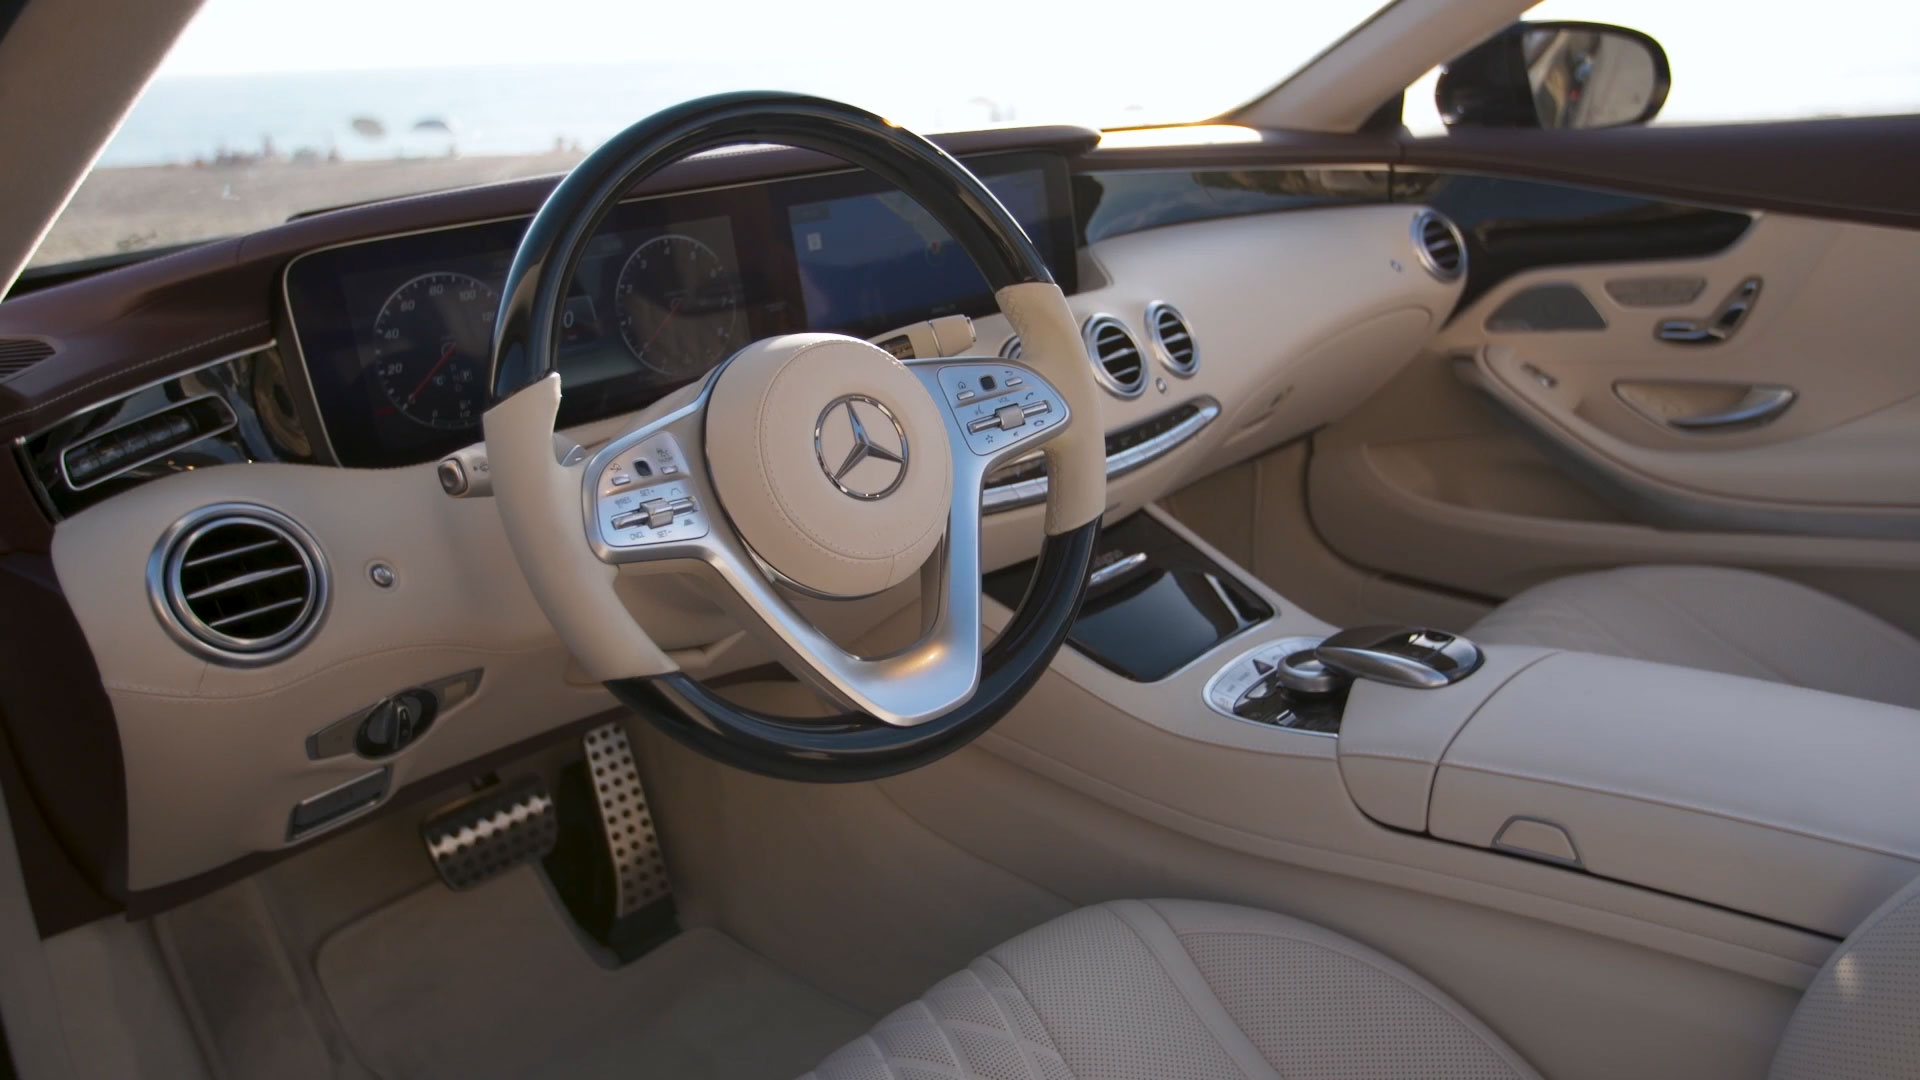 The new Mercedes Benz S 560 Cabriolet Interior Design in Blue metallic